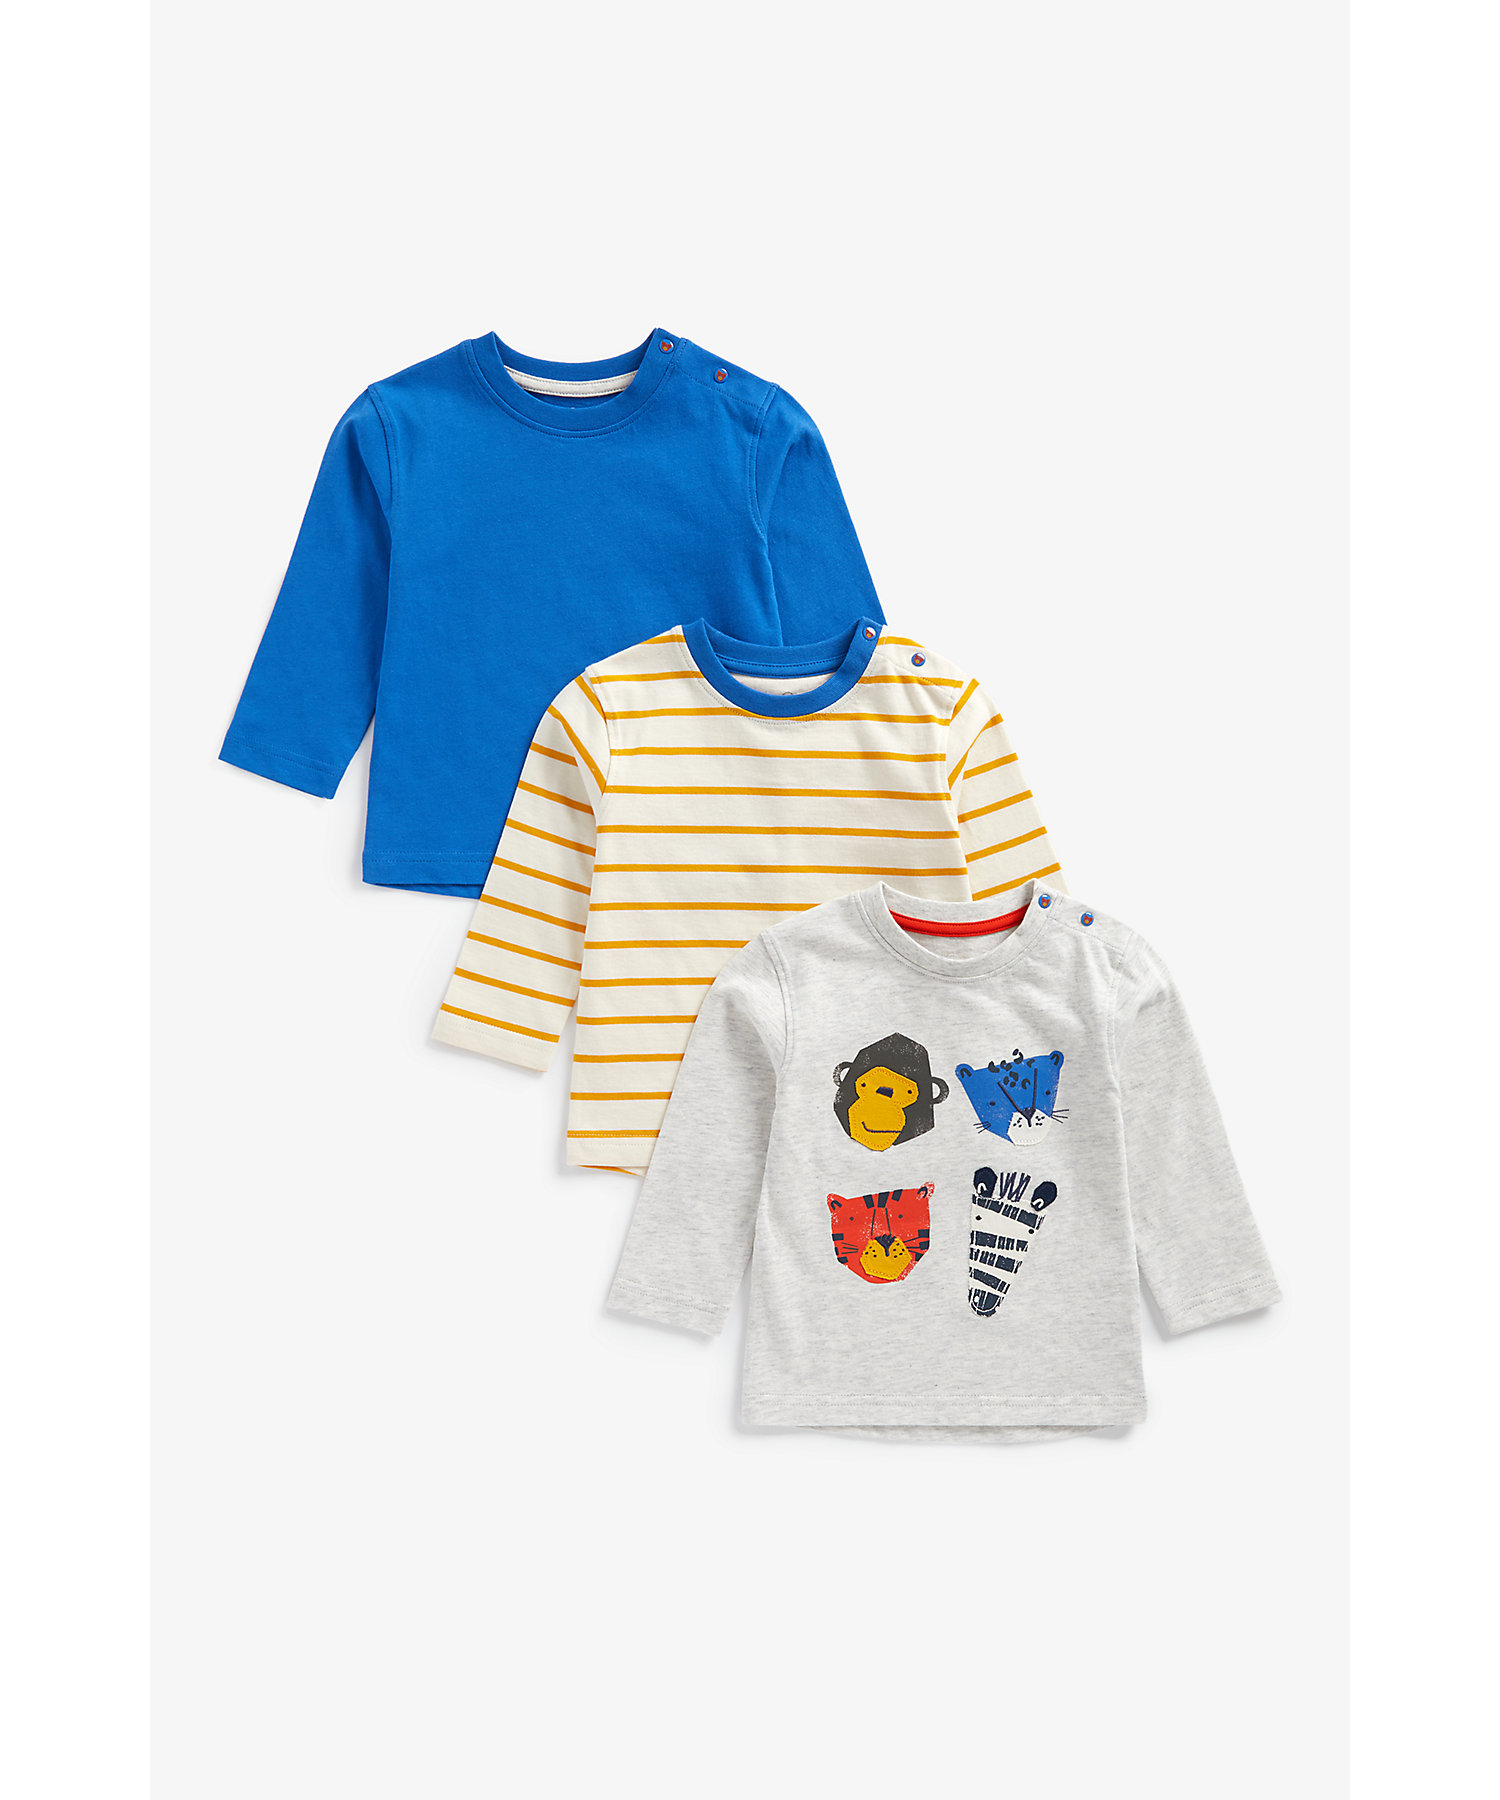 Mothercare   Boys Full Sleeves T-Shirt Striped And Animal Patchwork - Pack Of 3 - Multicolor